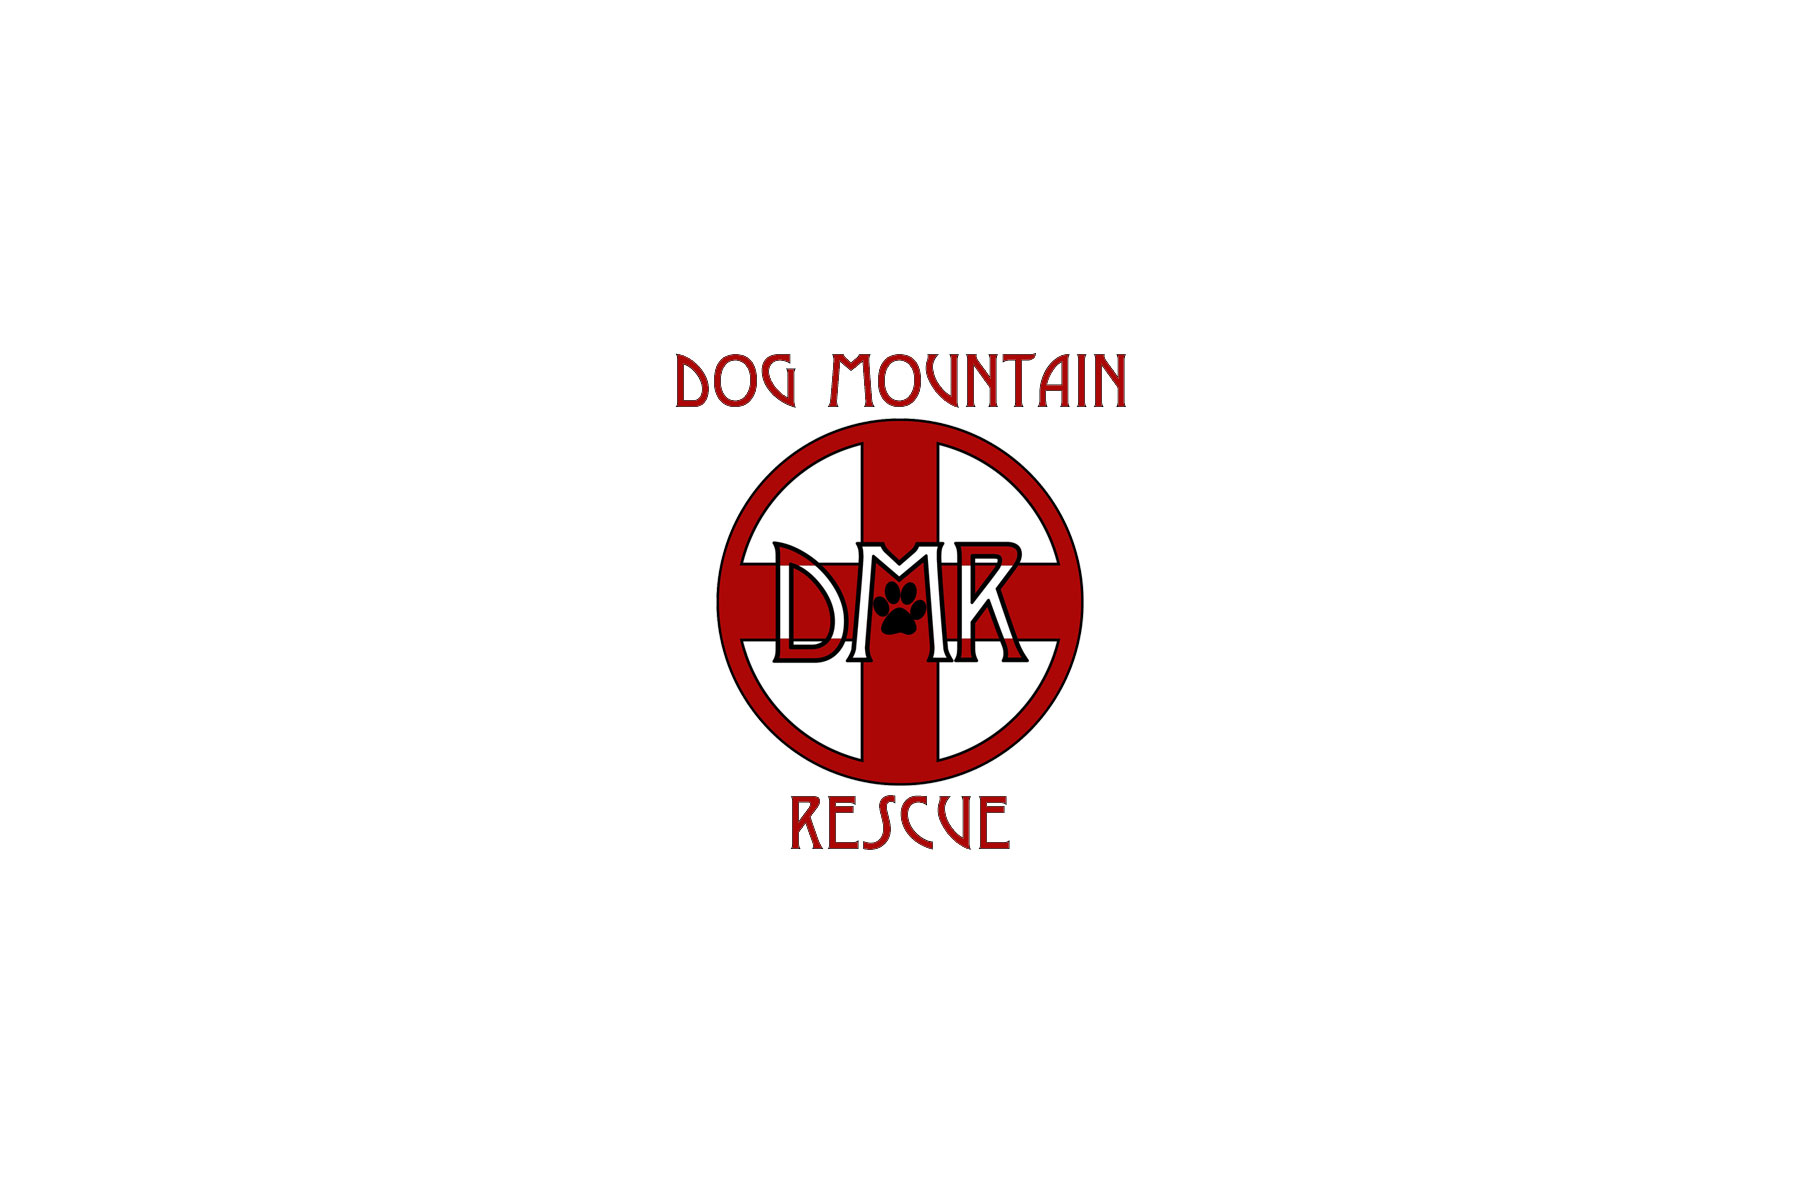 dog_mountain_rescue_logo_04g